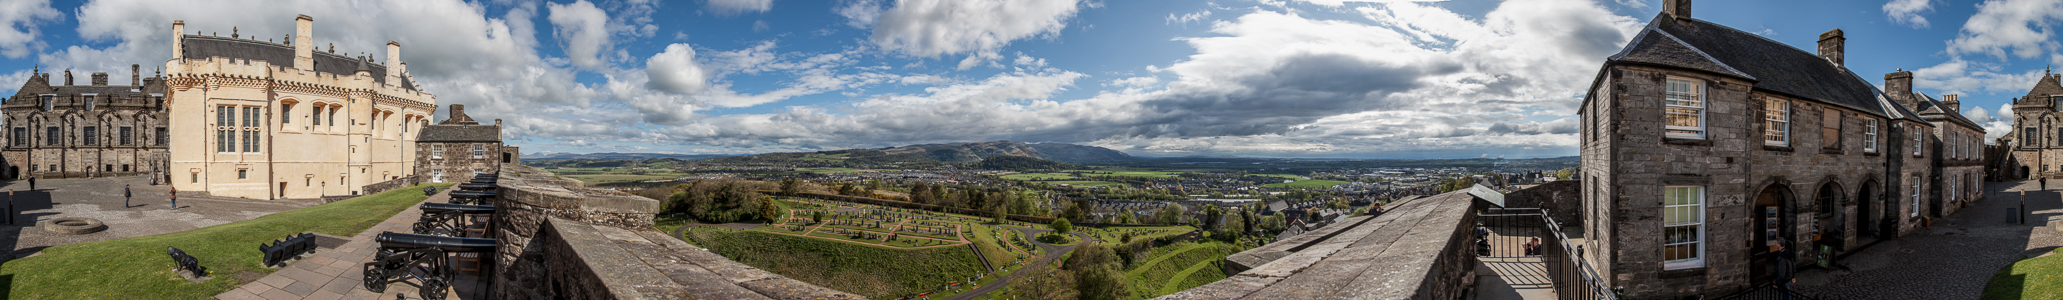 Stirling Castle, River Forth Valley, Ochil Hills Abbey Craig National Wallace Monument